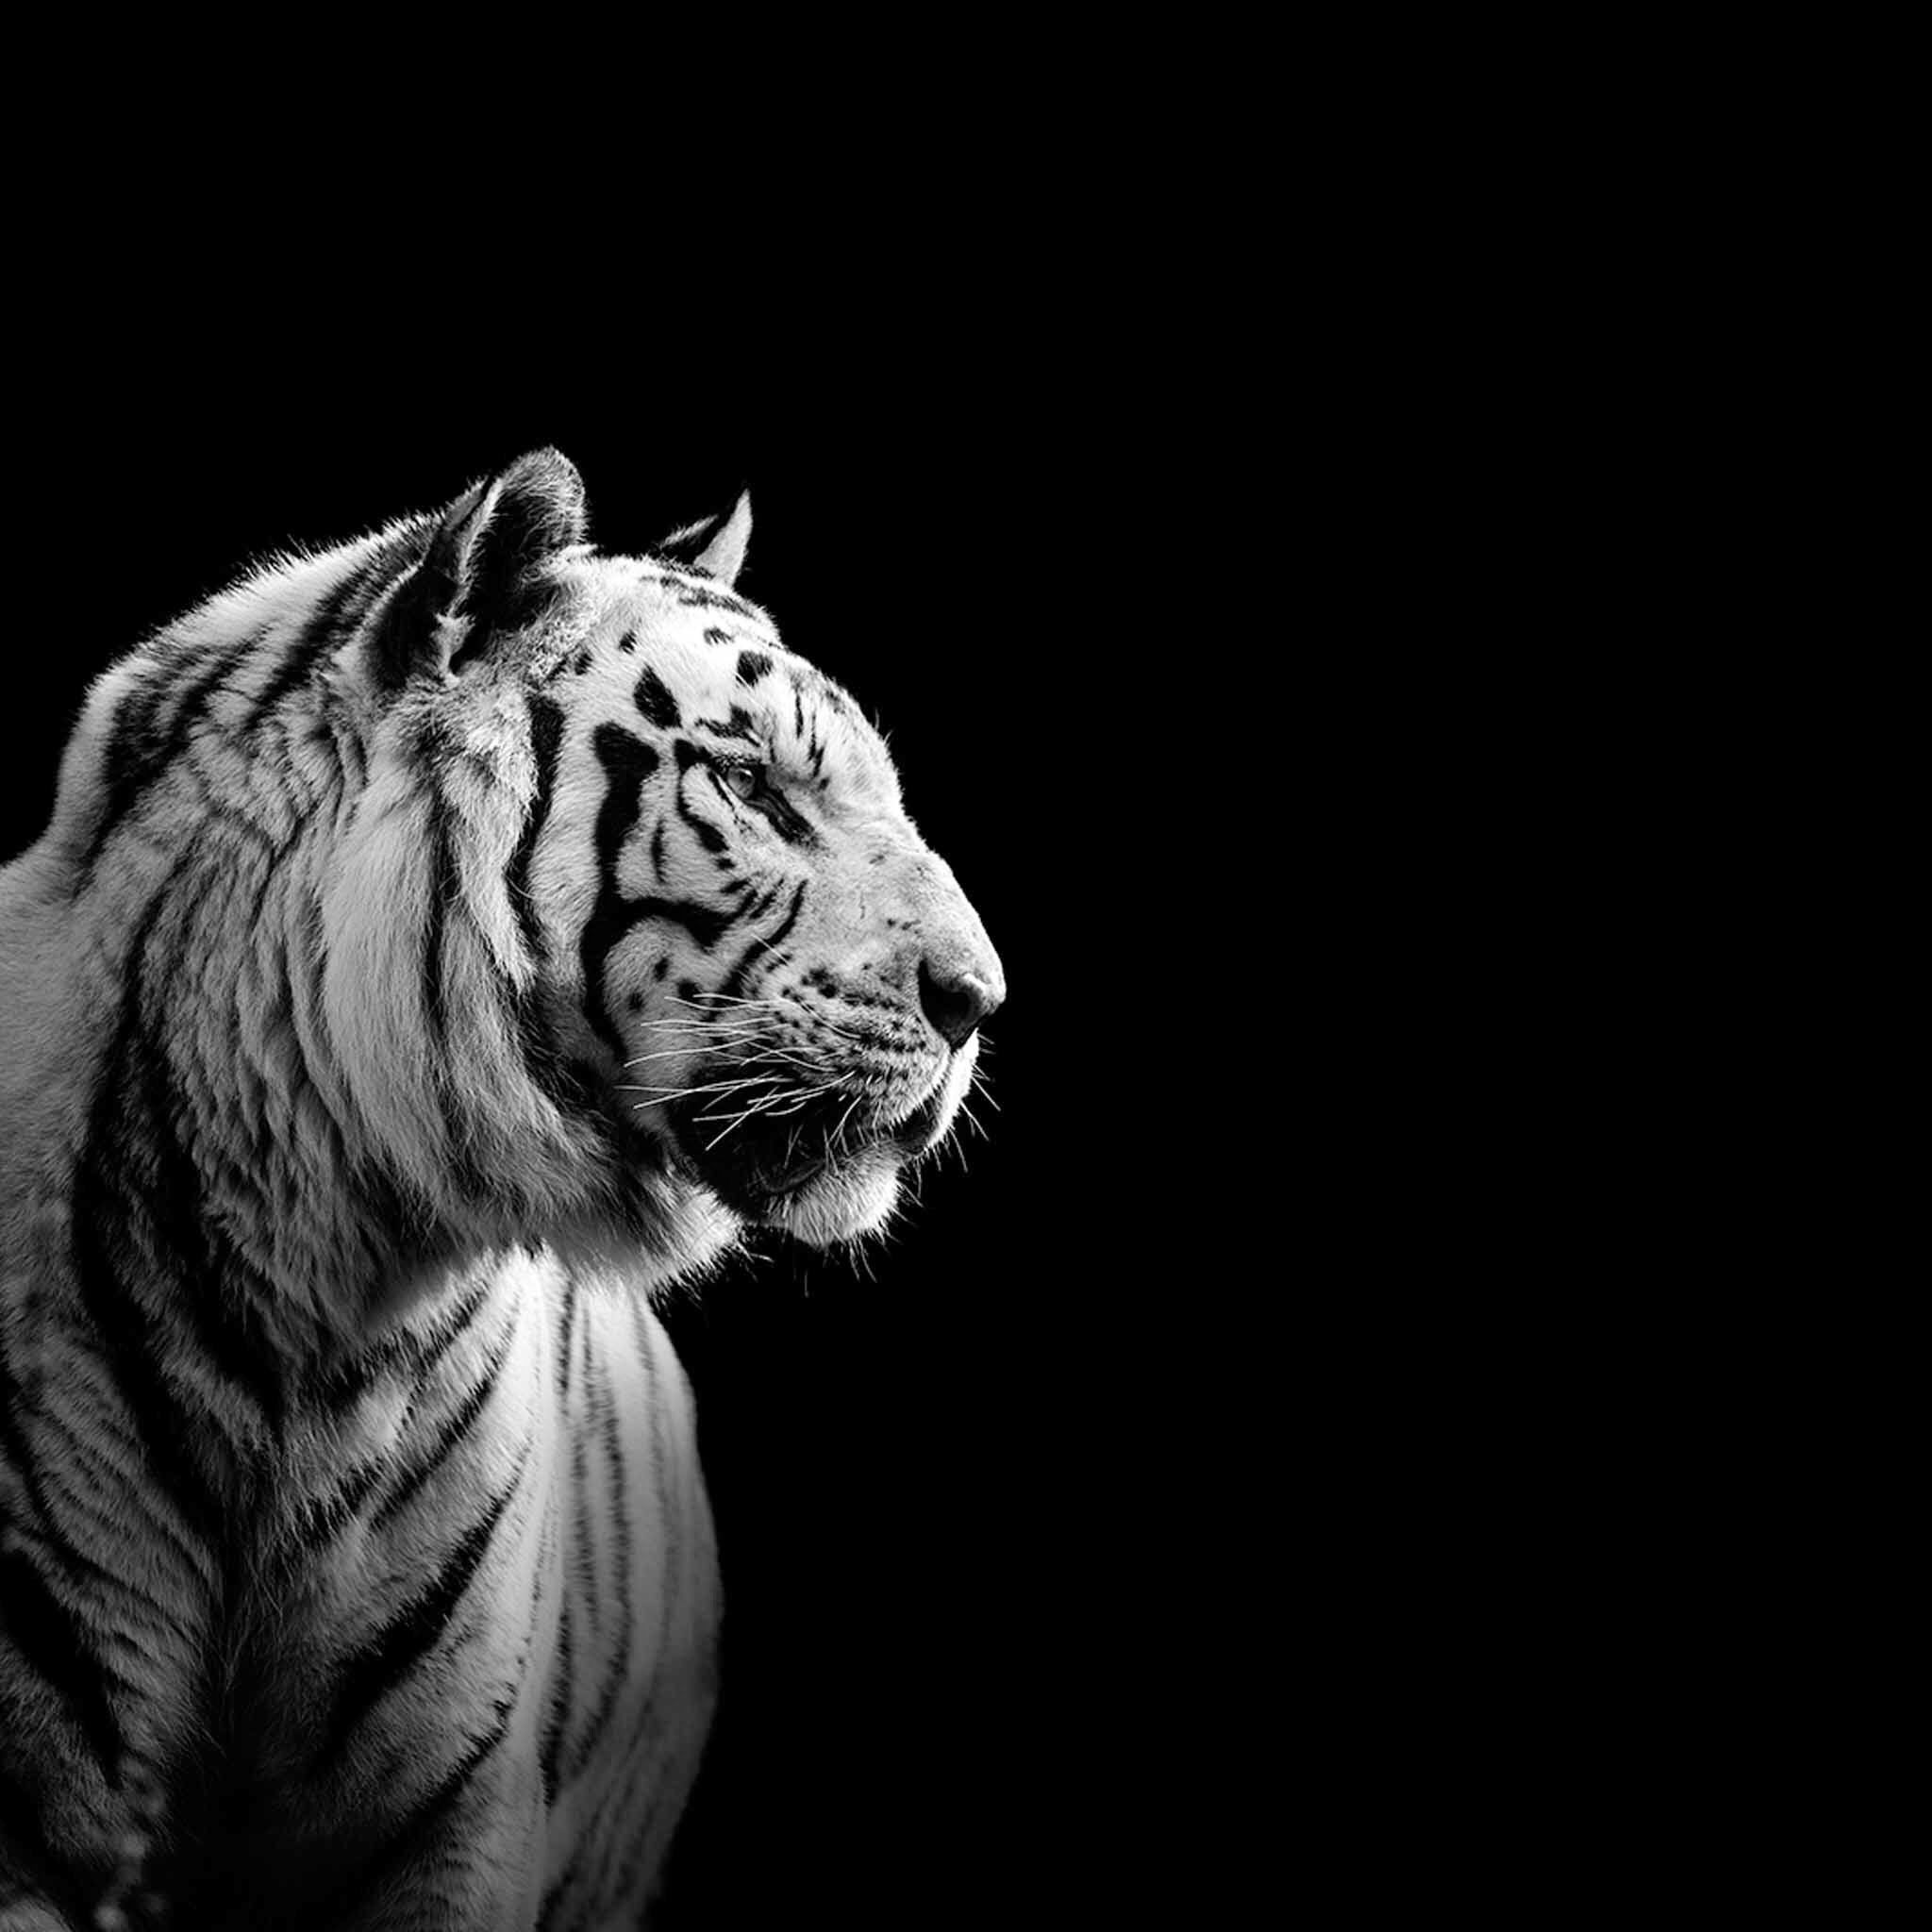 This White Tiger Is Staring In To The Darkness Tiger Wallpaper